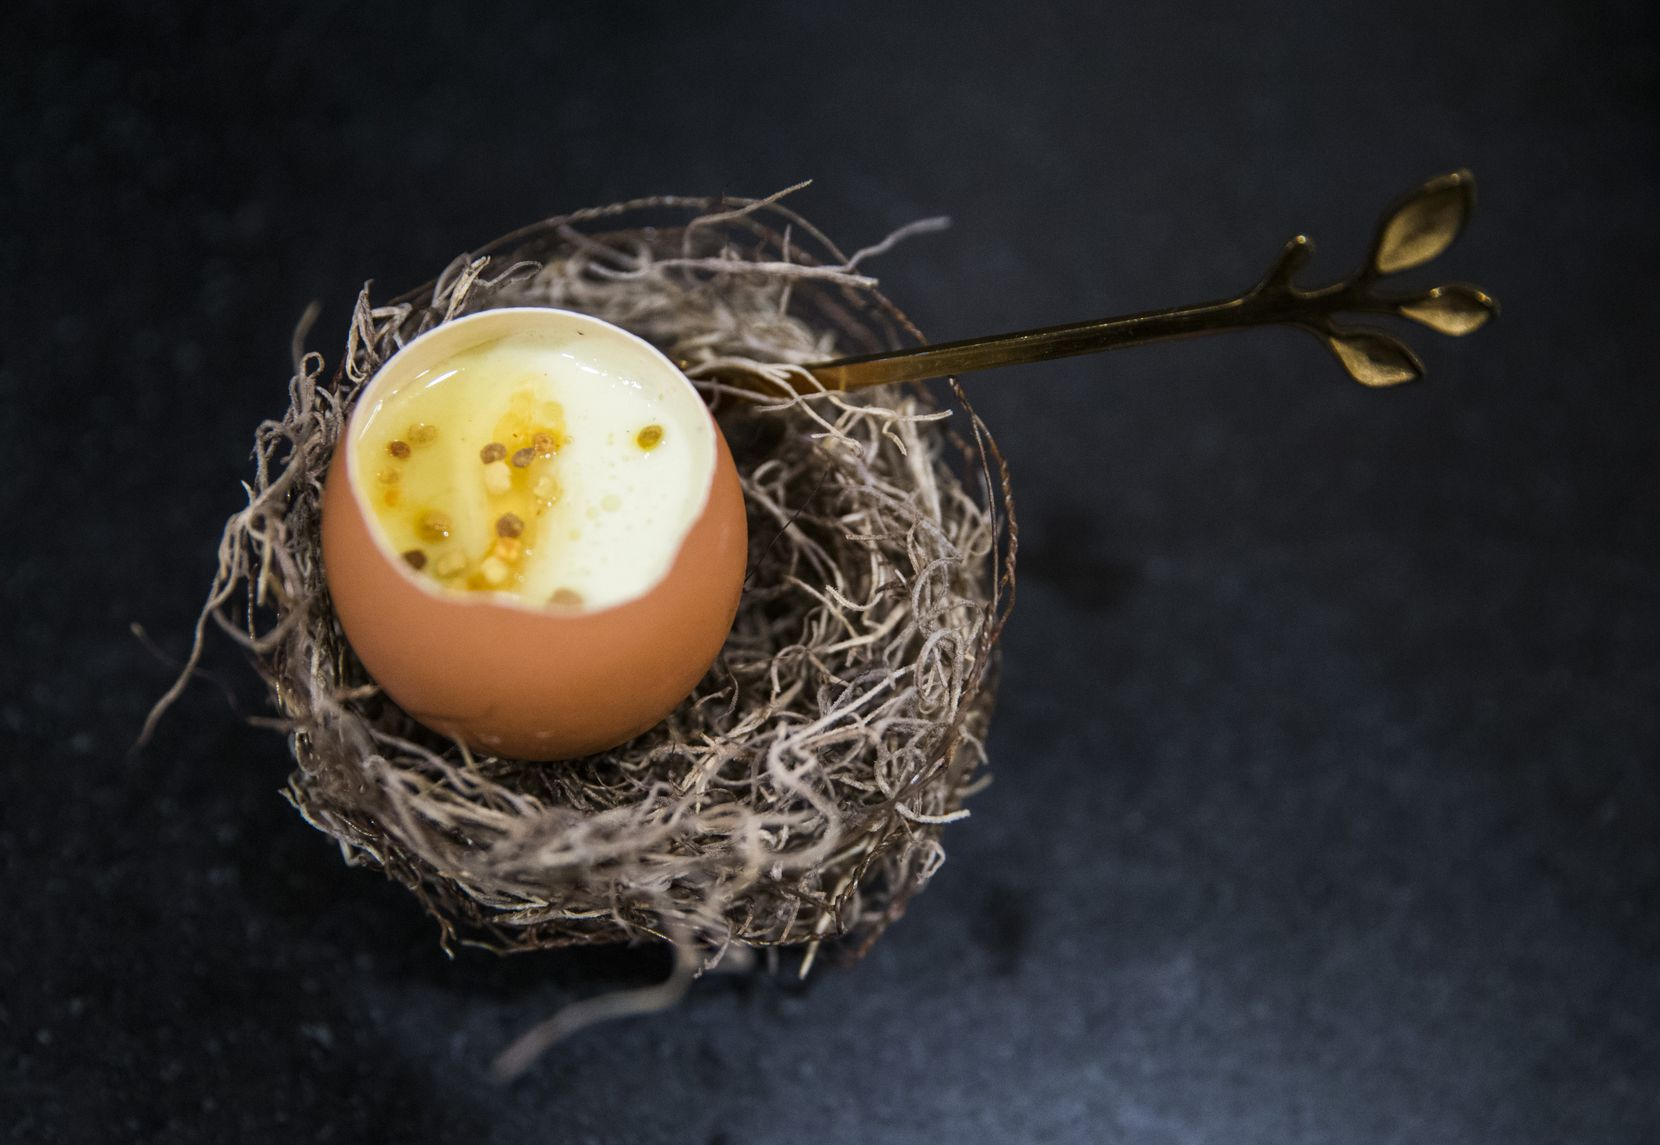 Most of chef Casey La Rue's dinners end with crémeux, a French dessert. On Jan. 25, 2020, he served mint crémeux with lime and vanilla.